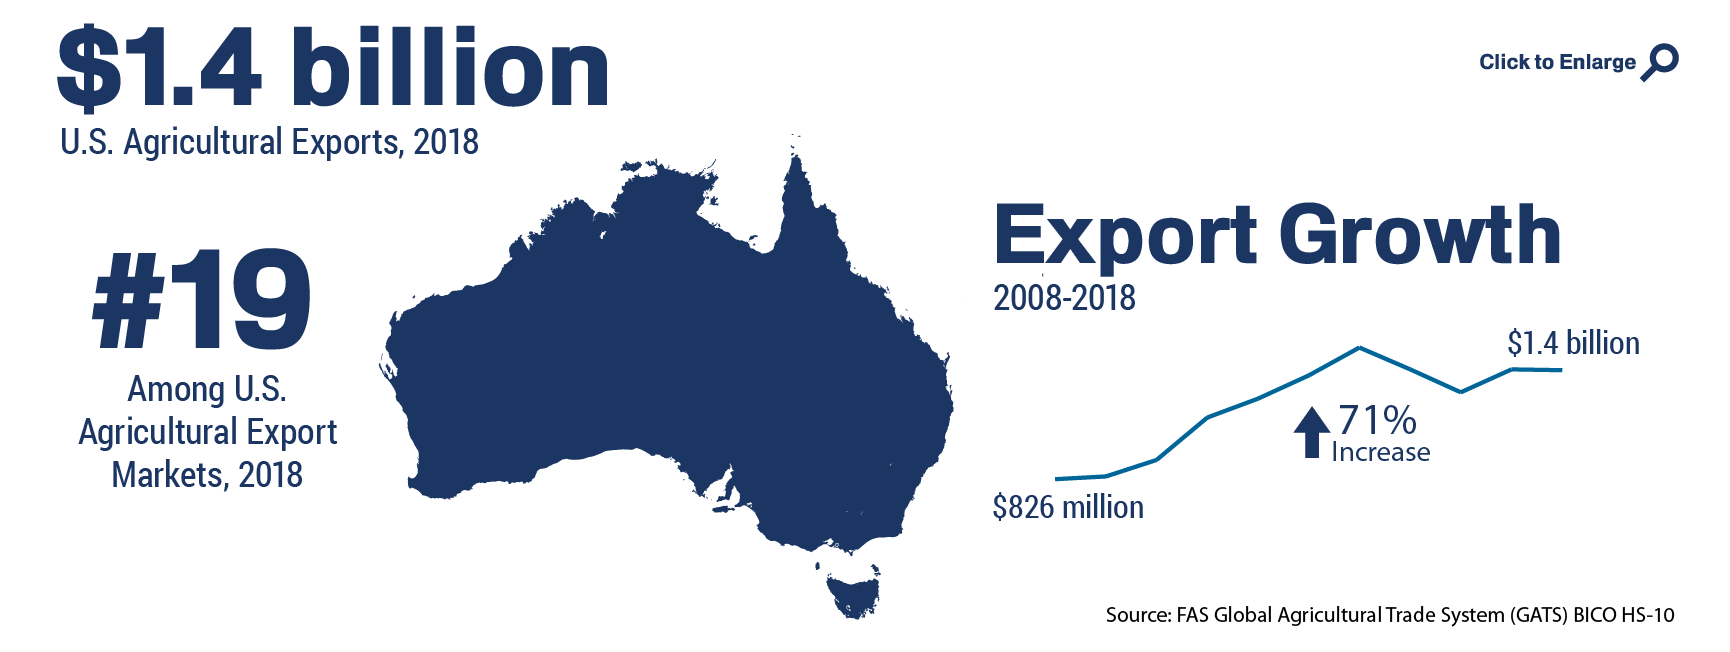 Infographic showing the ranking and total of U.S. agricultural trade to Australia in 2018